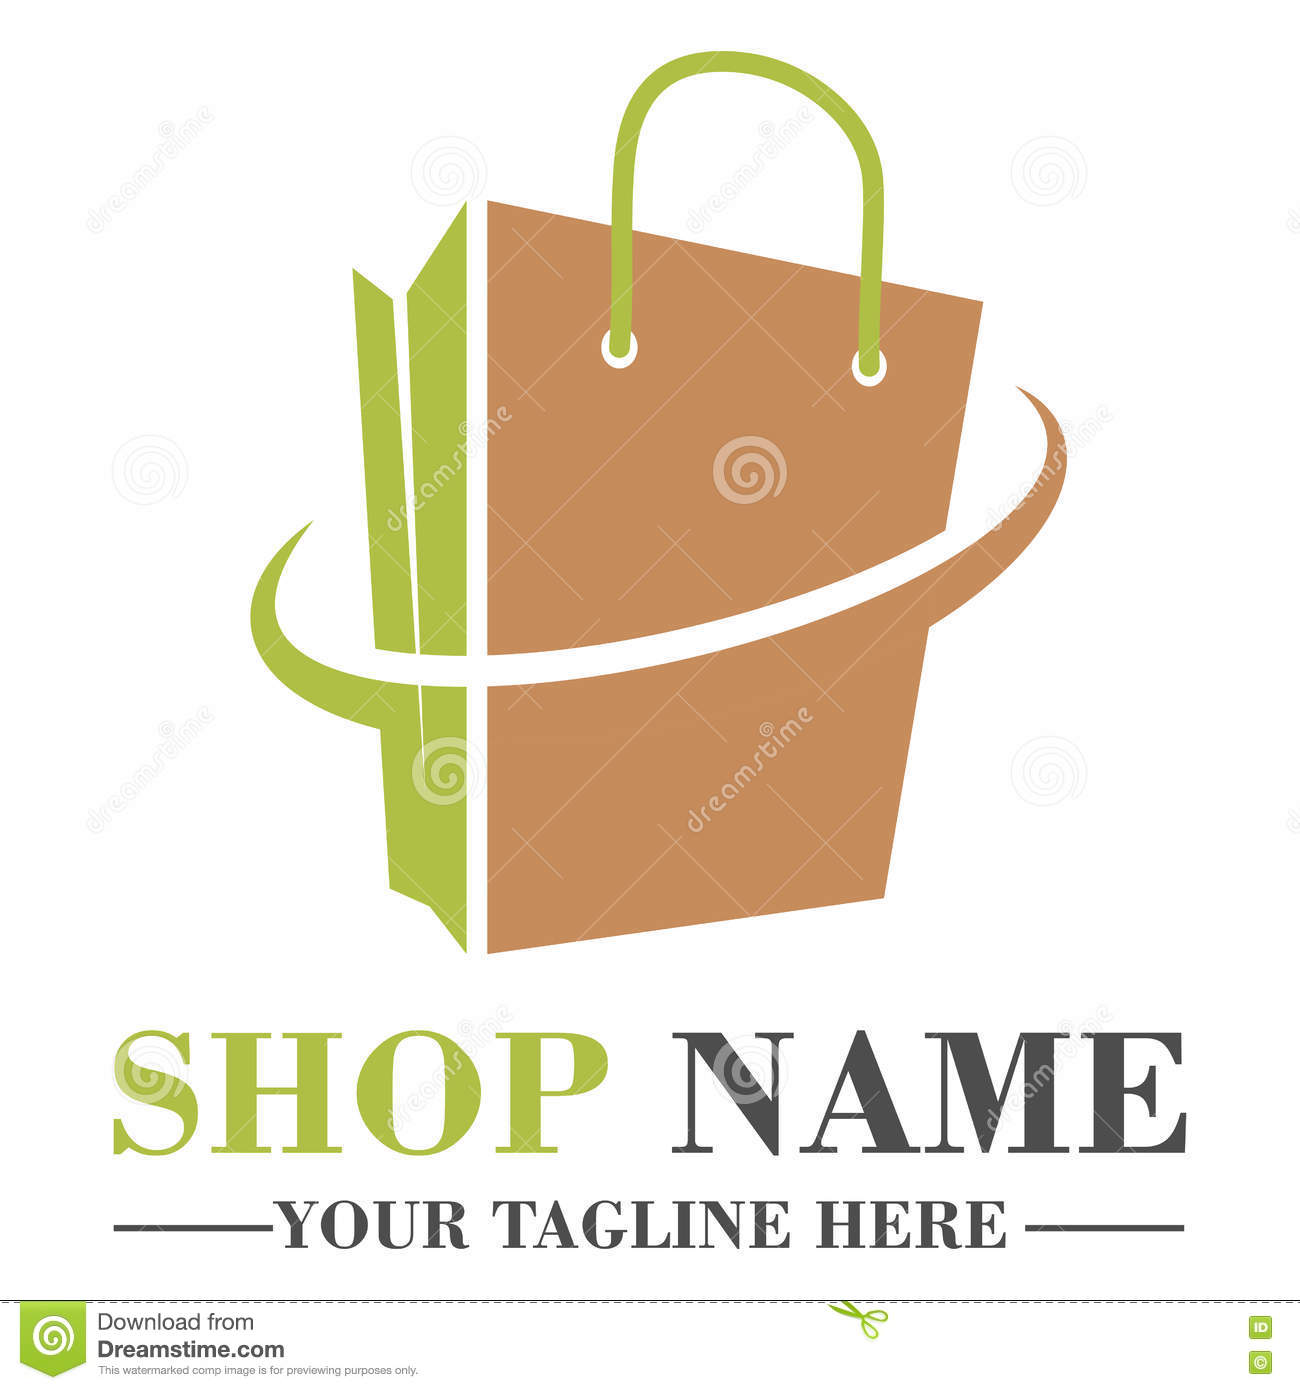 Design Online Shop Online Shop Logo Template Design Stock Vector Illustration Of